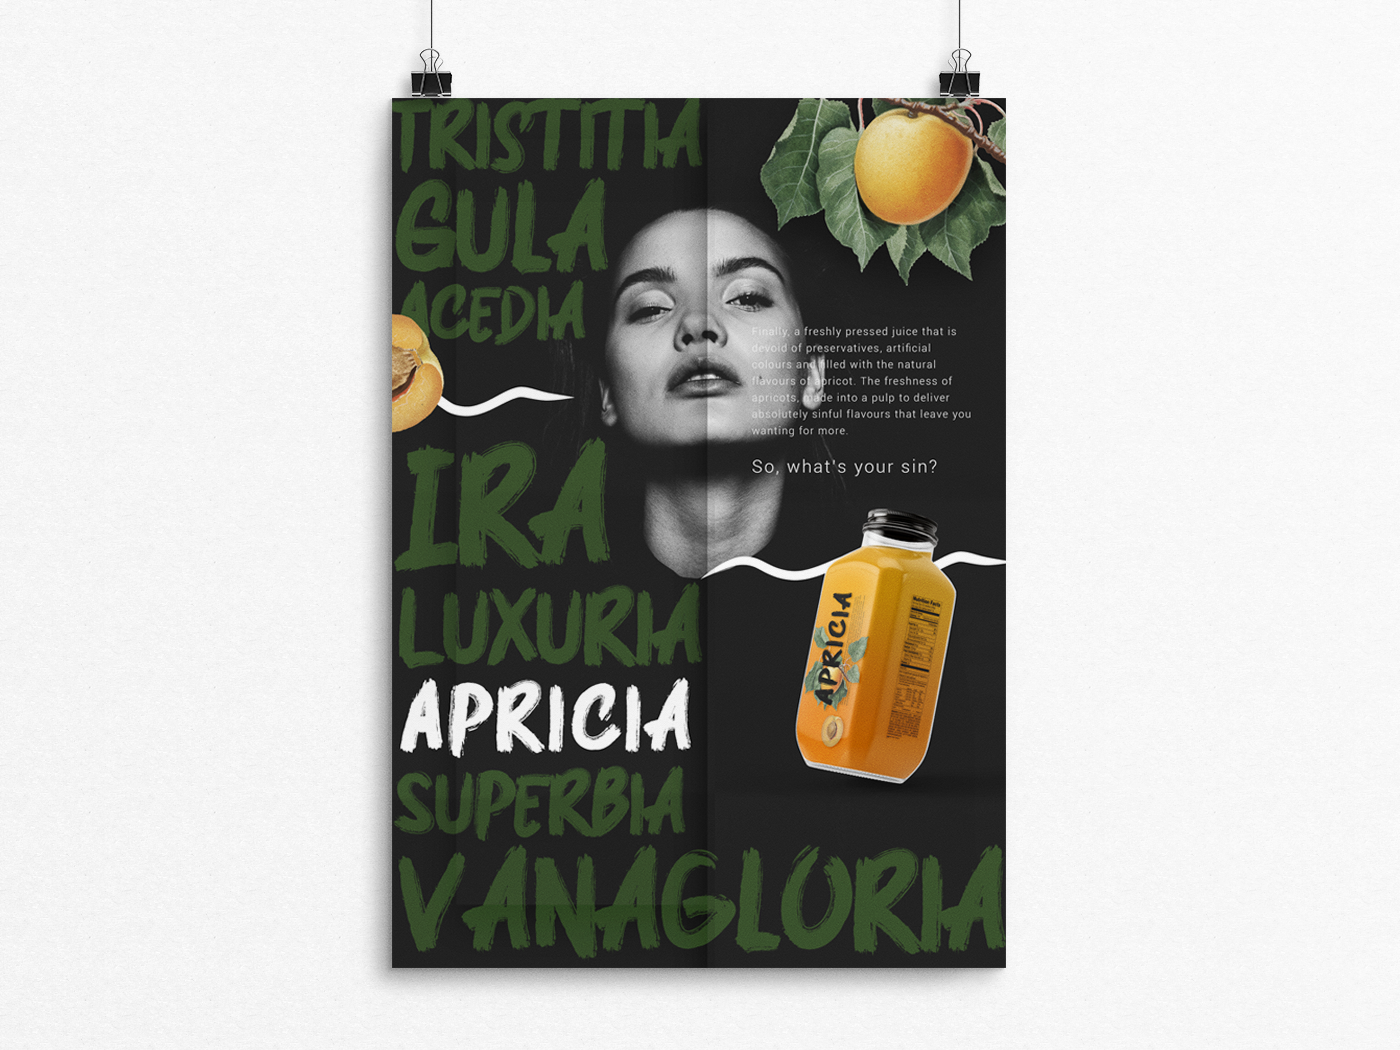 Apricia Poster Design product design product branding product photoshop poster art poster creative  design flyer design flyer branding agency graphic design graphicdesign branding design